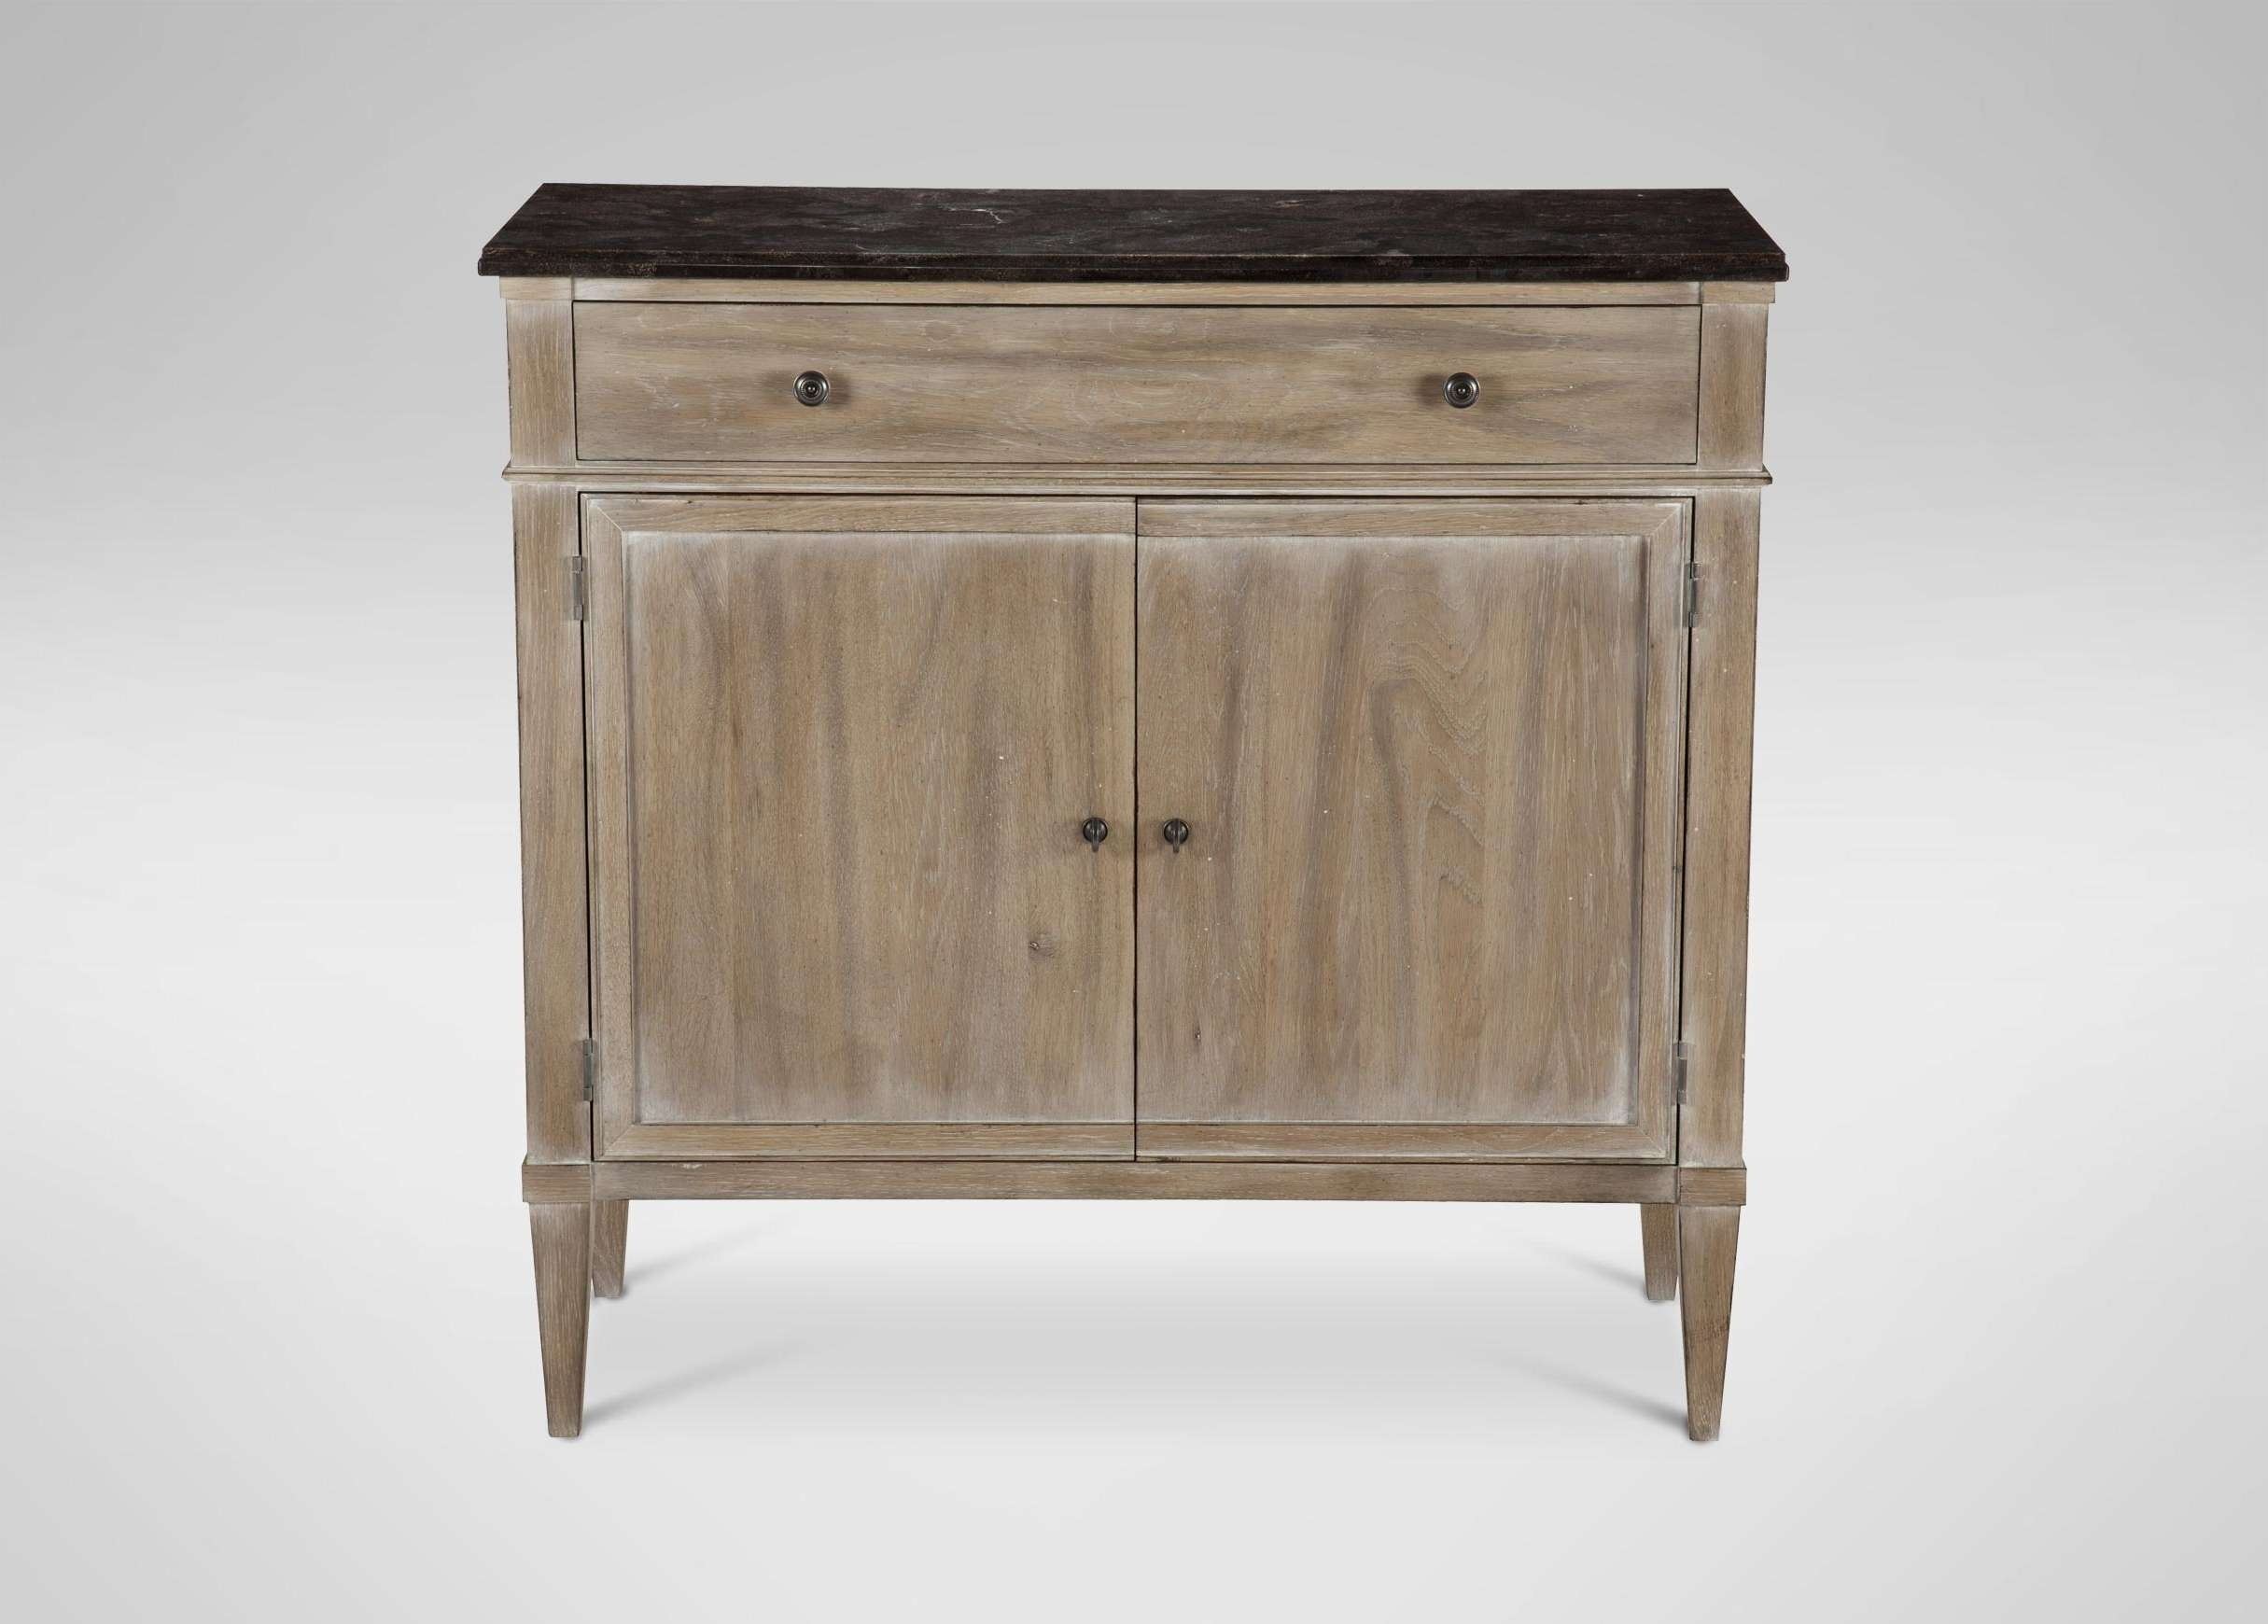 Shop Buffet Storage, Sideboards & Servers | Ethan Allen Within Ethan Allen Sideboards (View 15 of 20)